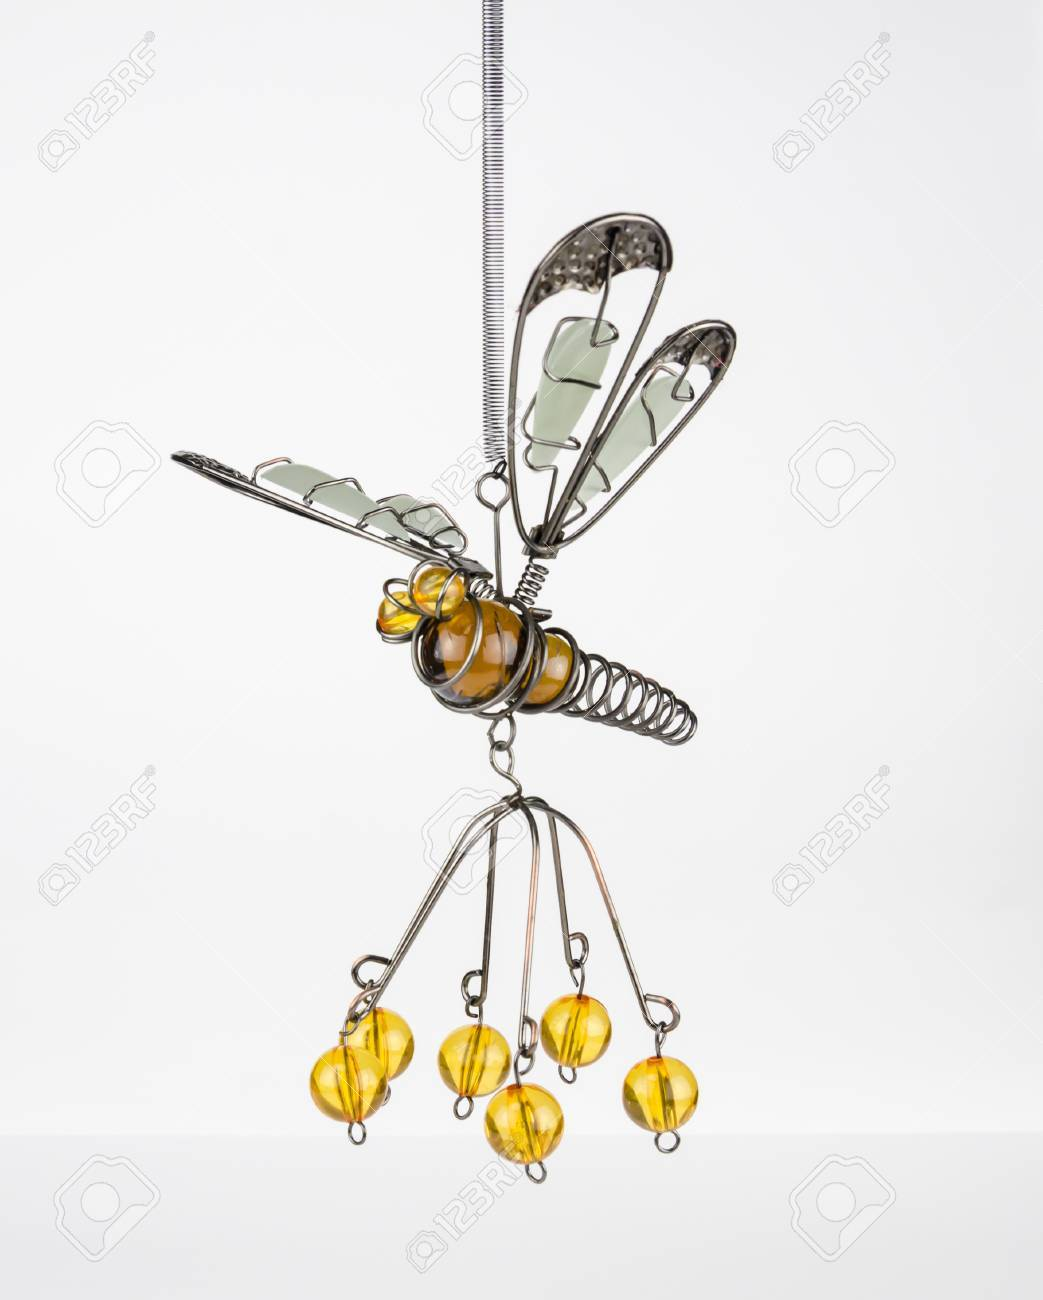 A Crafted Firefly Made Out Of Beads And Bent Wire Stock Photo ...